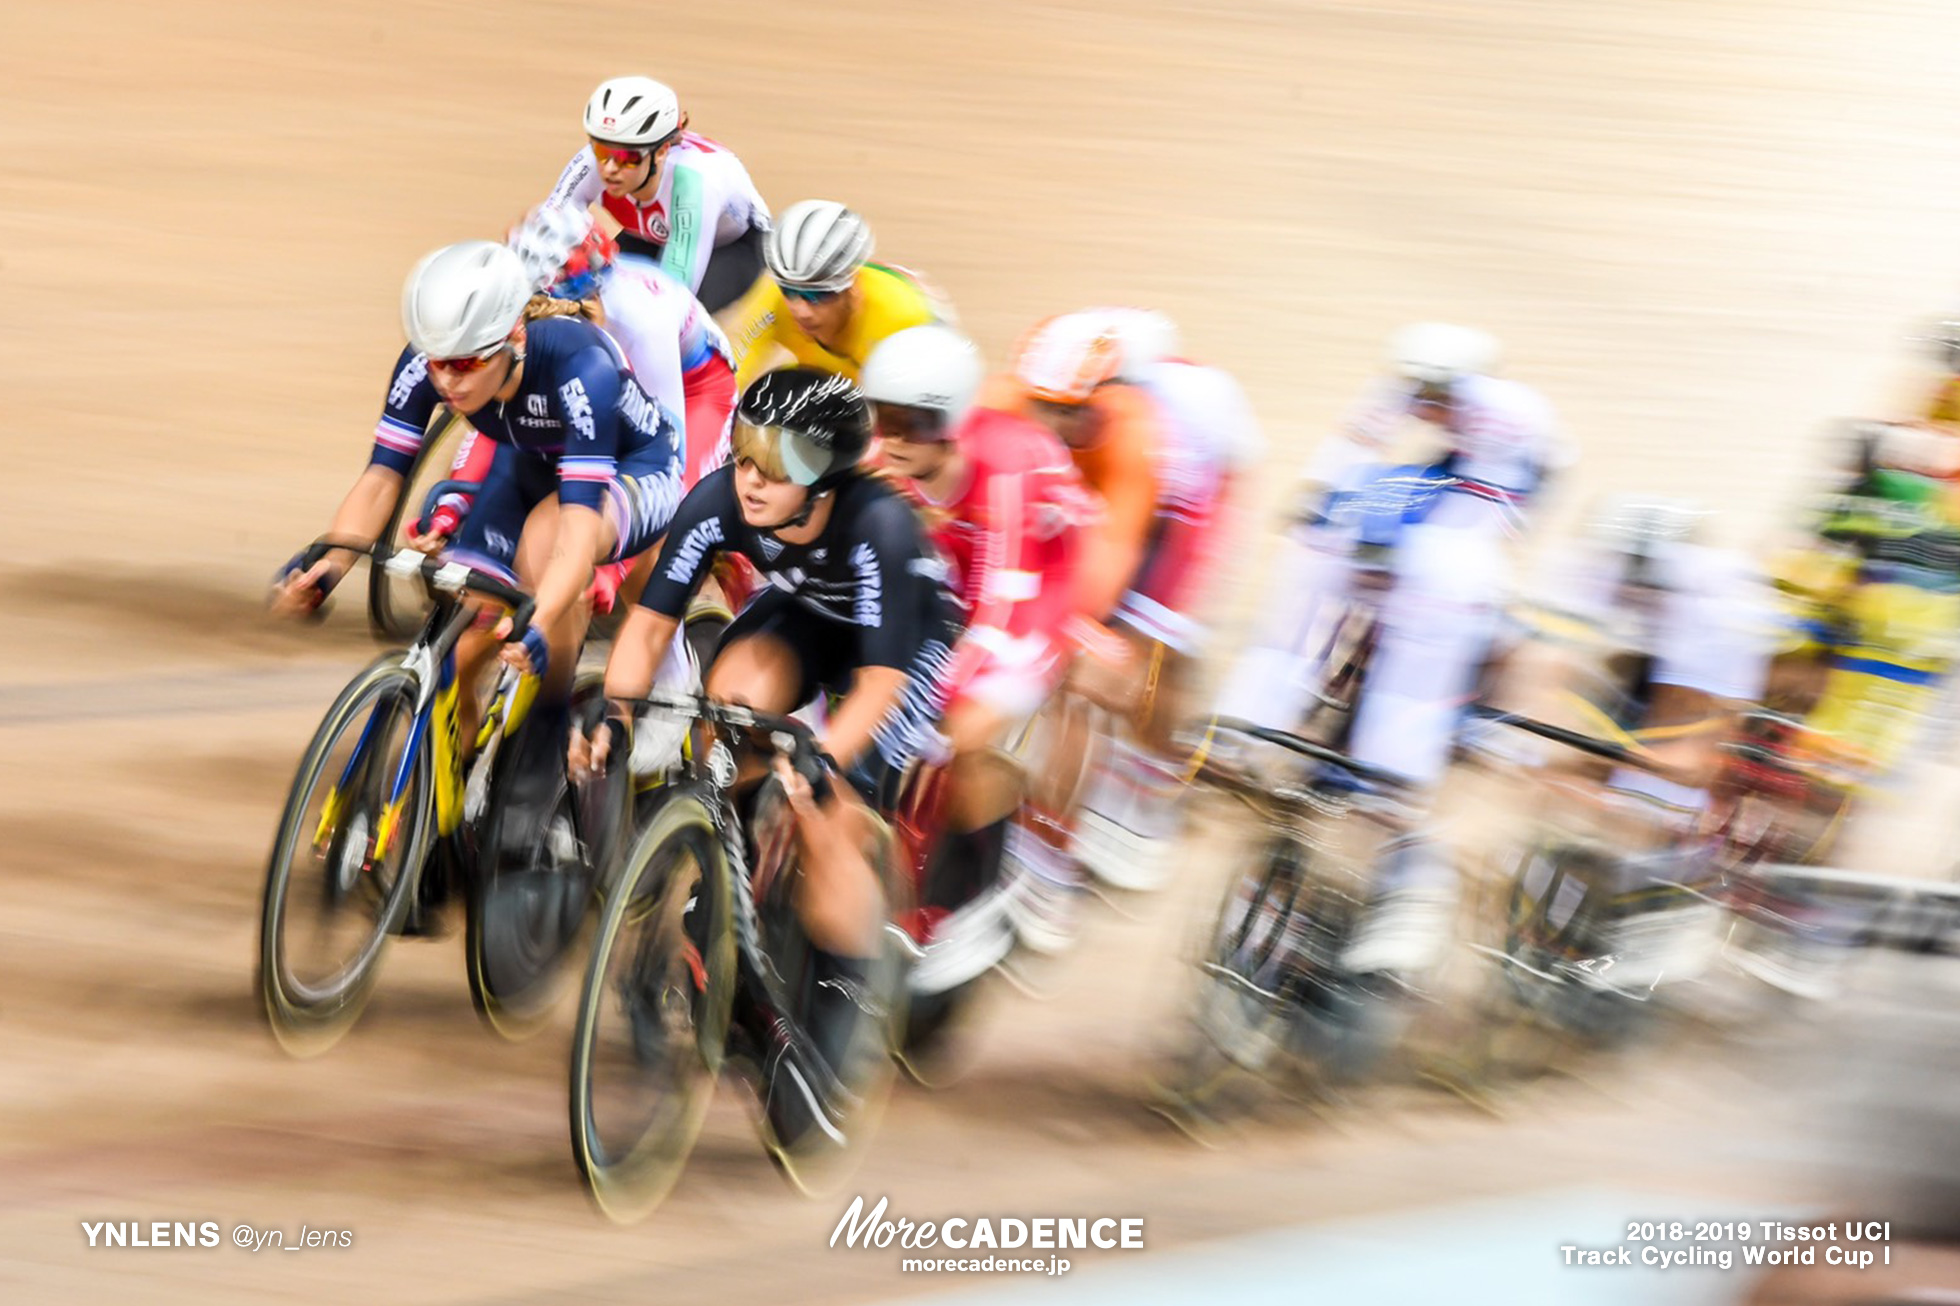 2018-2019 TRACK CYCLING WORLD CUP I Women's Point Race